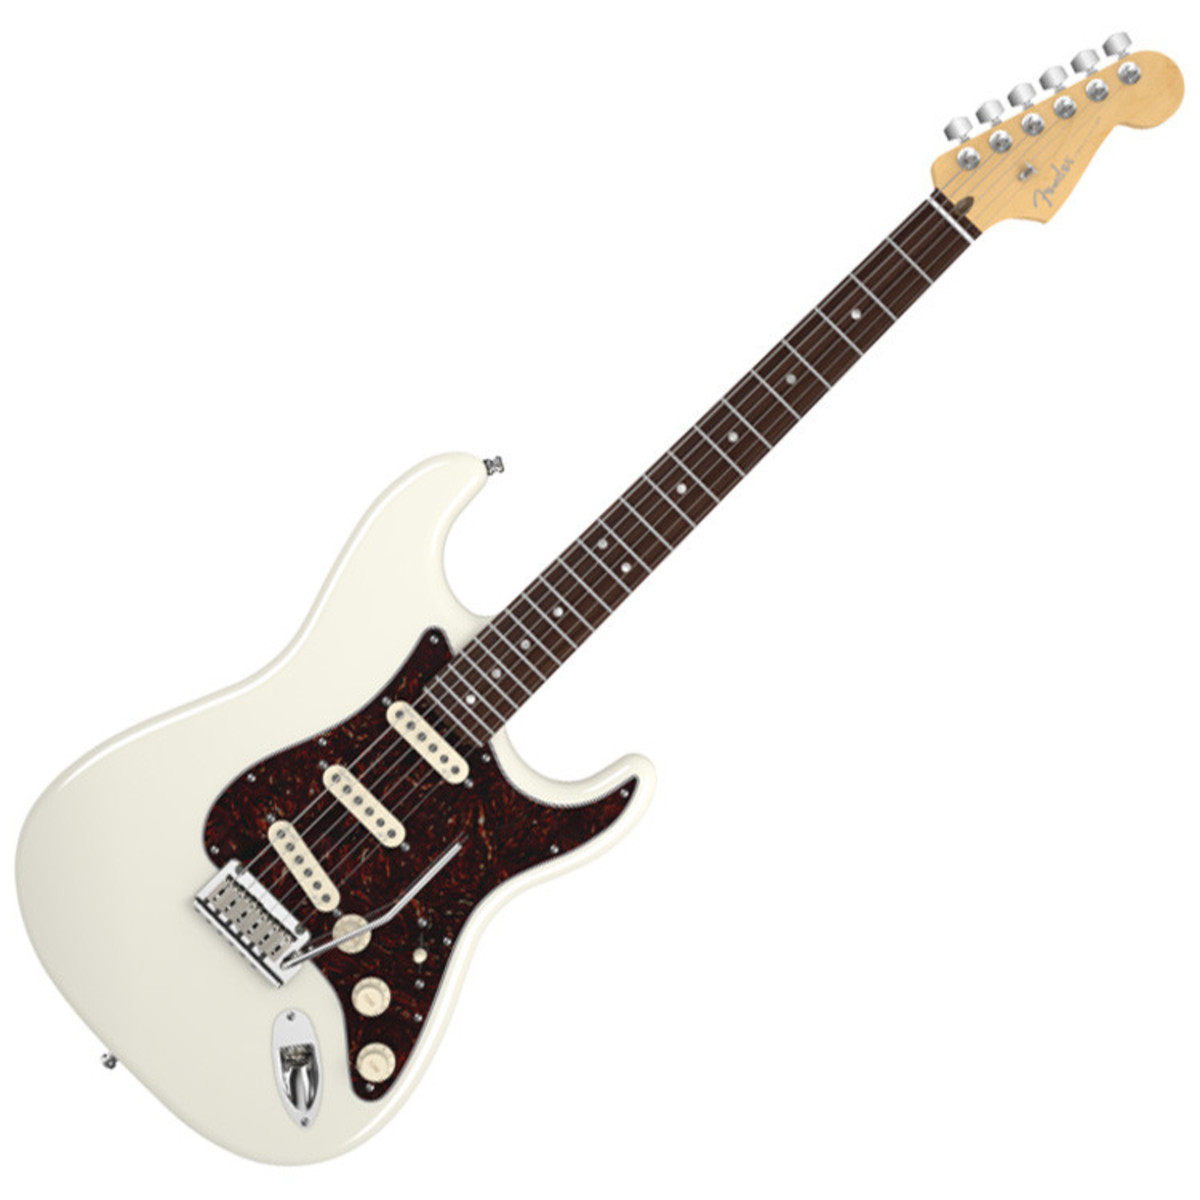 fender american deluxe stratocaster electric guitar olympic pearl at gear4music. Black Bedroom Furniture Sets. Home Design Ideas